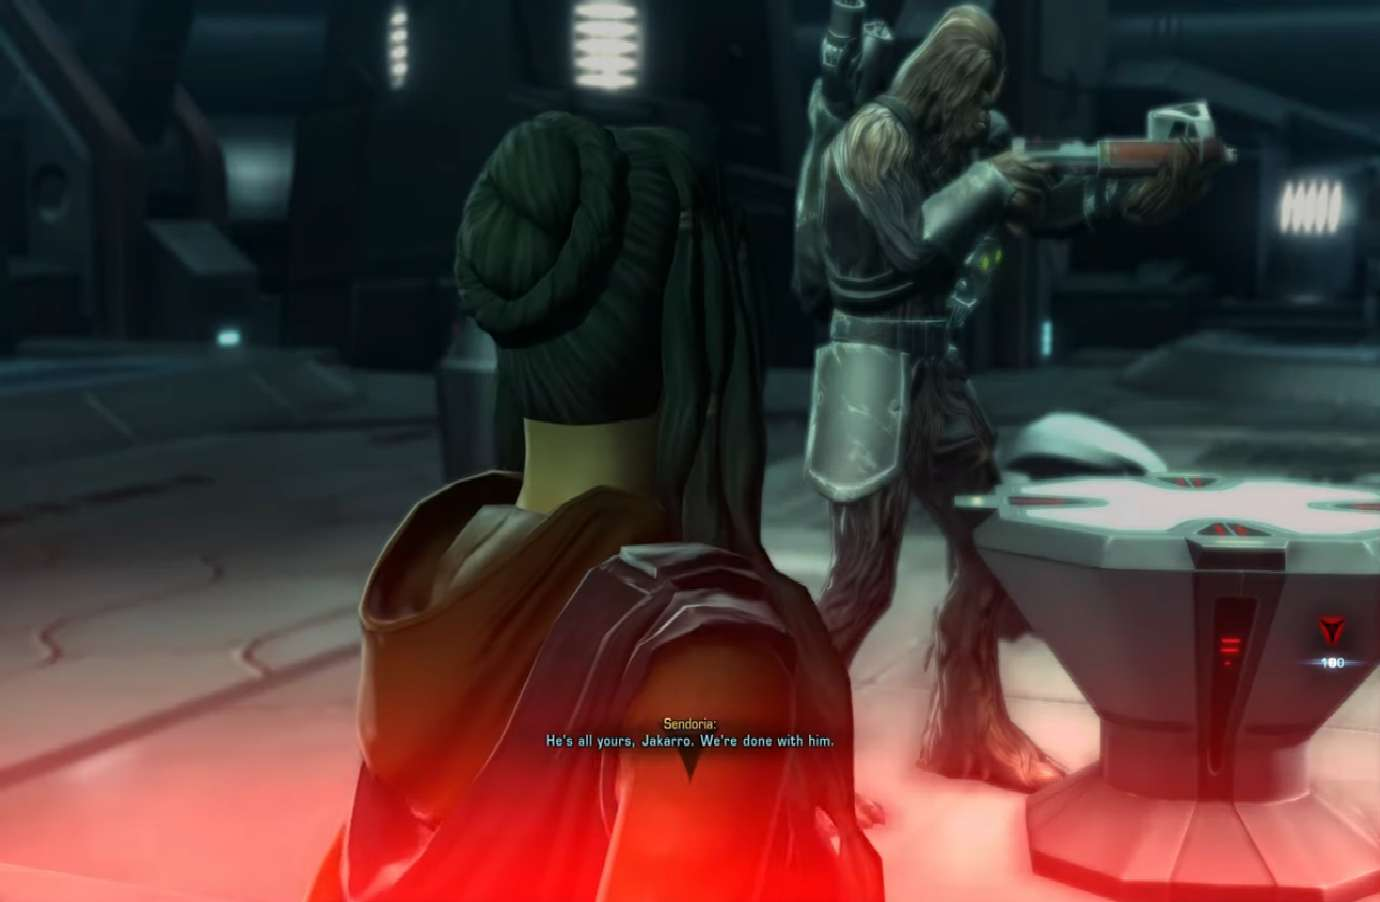 Star Wars The Old Republic Releases Information On The Conquest Changes Coming In Version 6.1.1